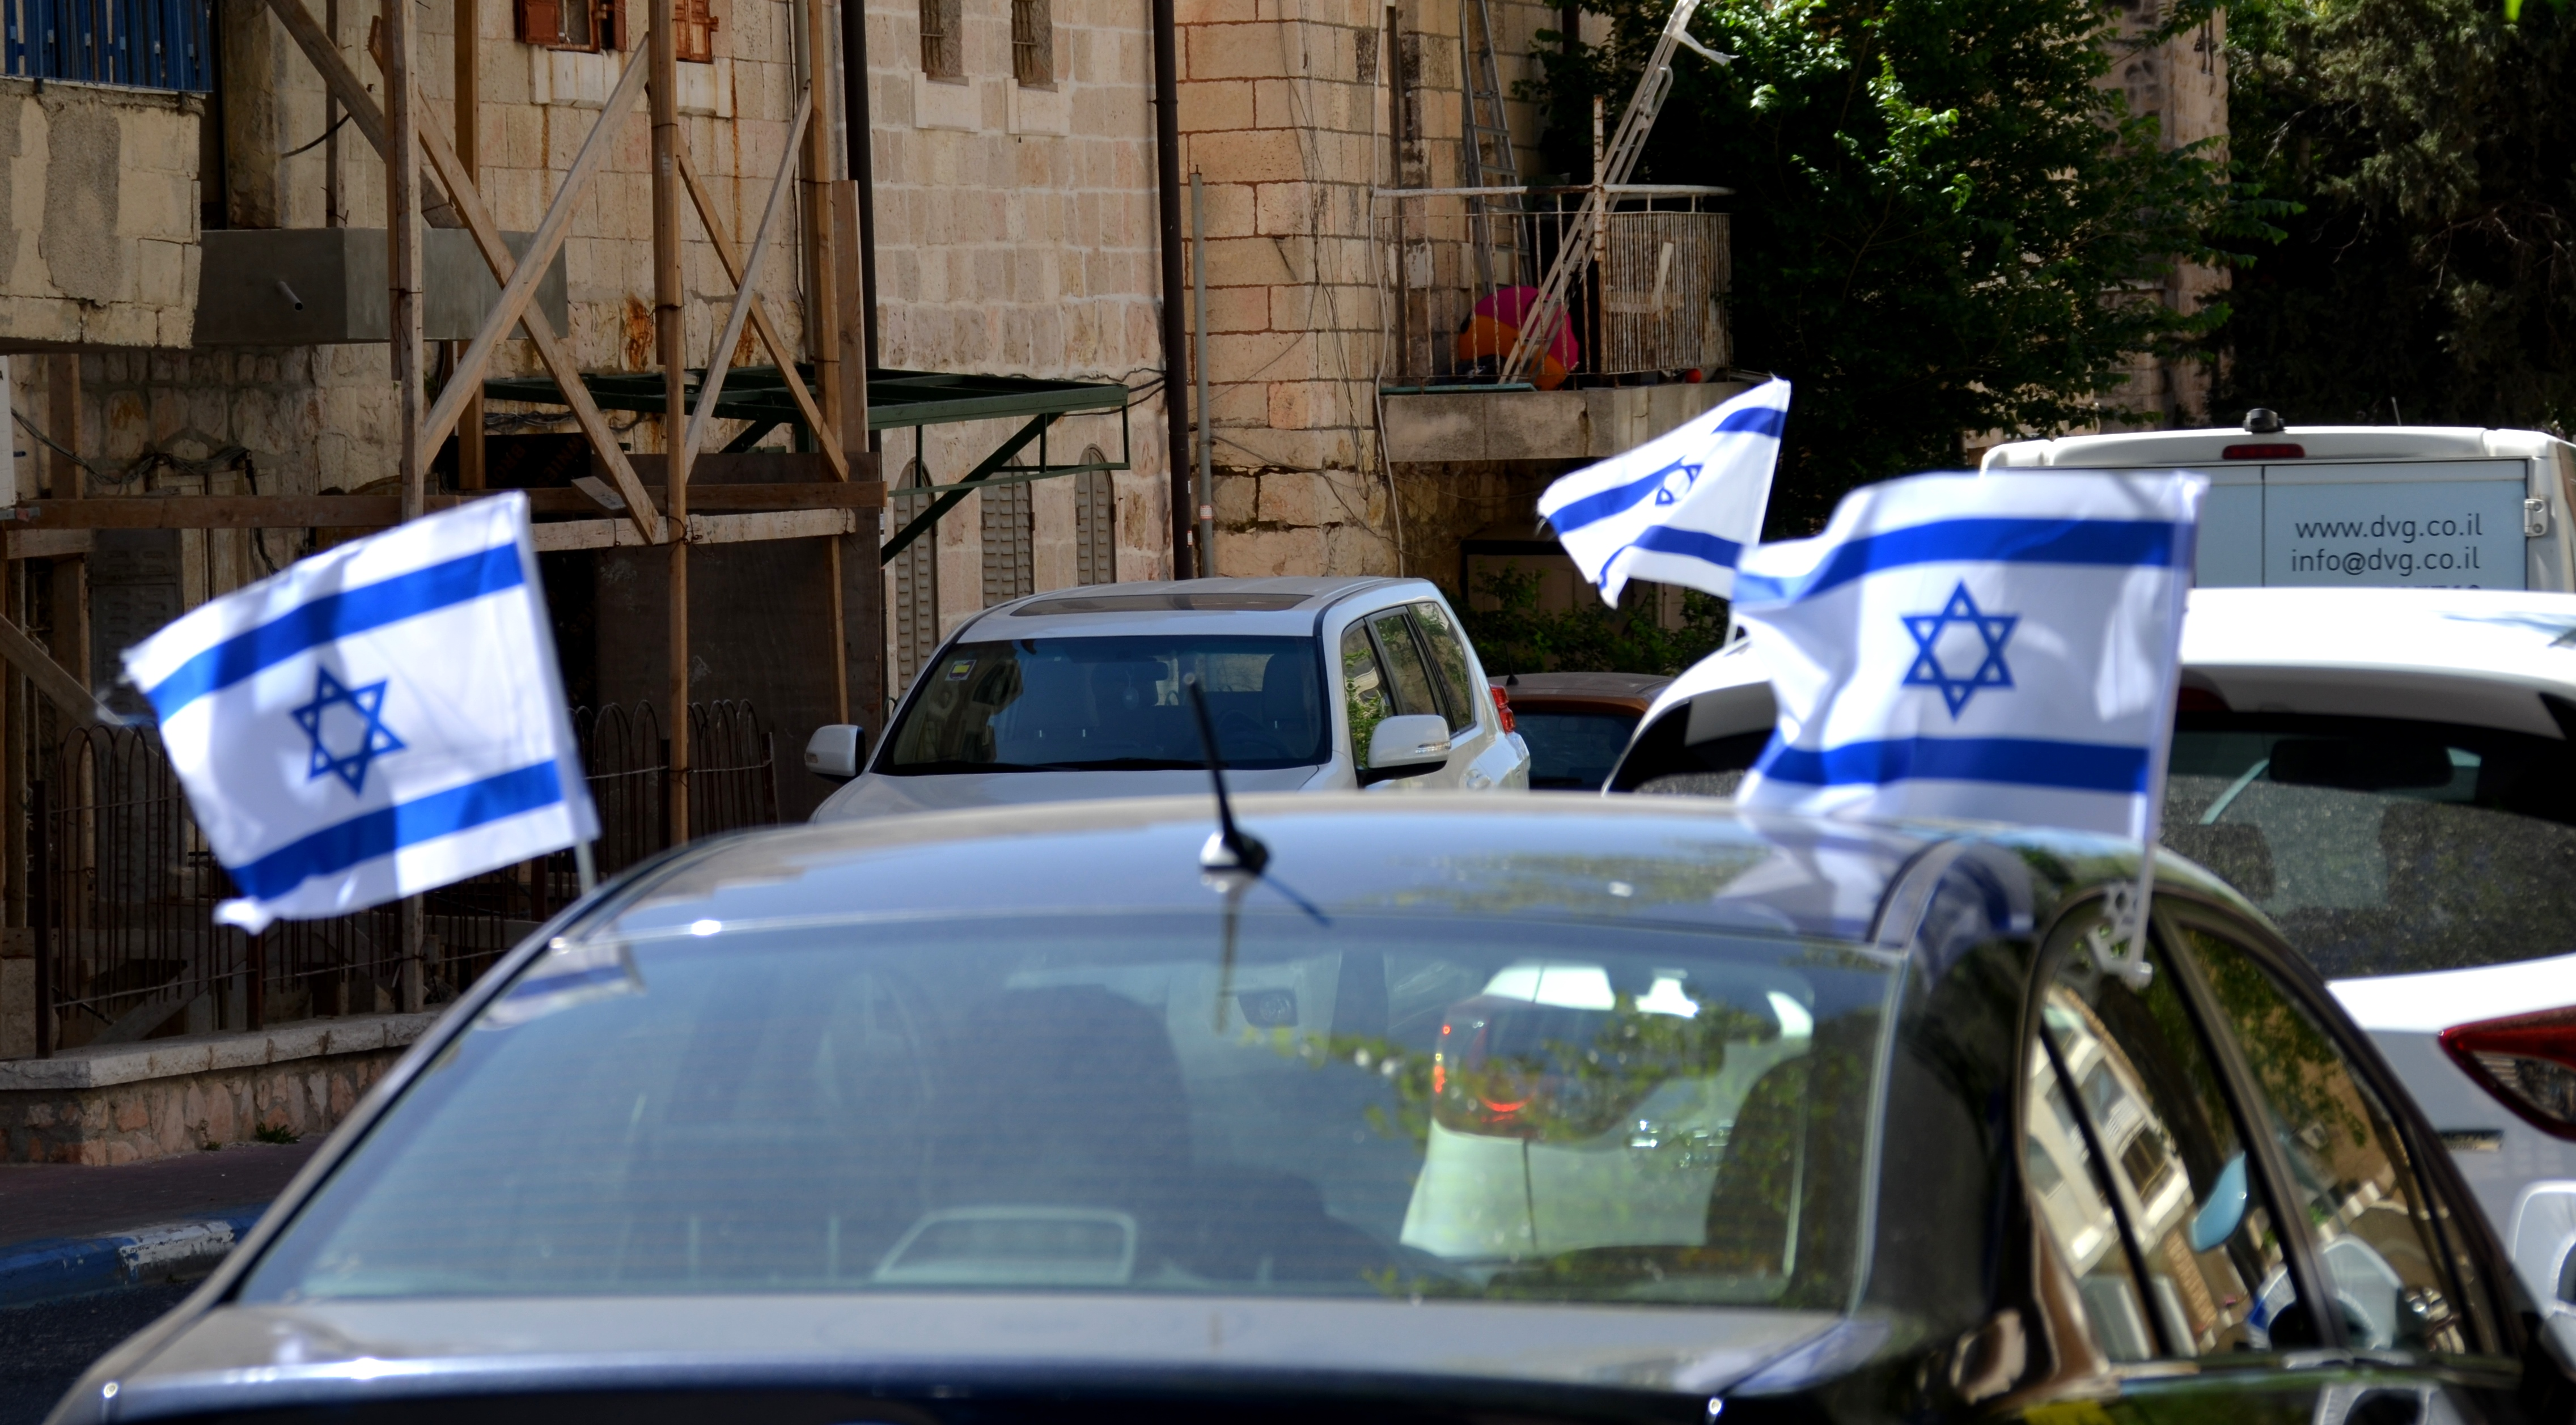 Israeli flags on cars